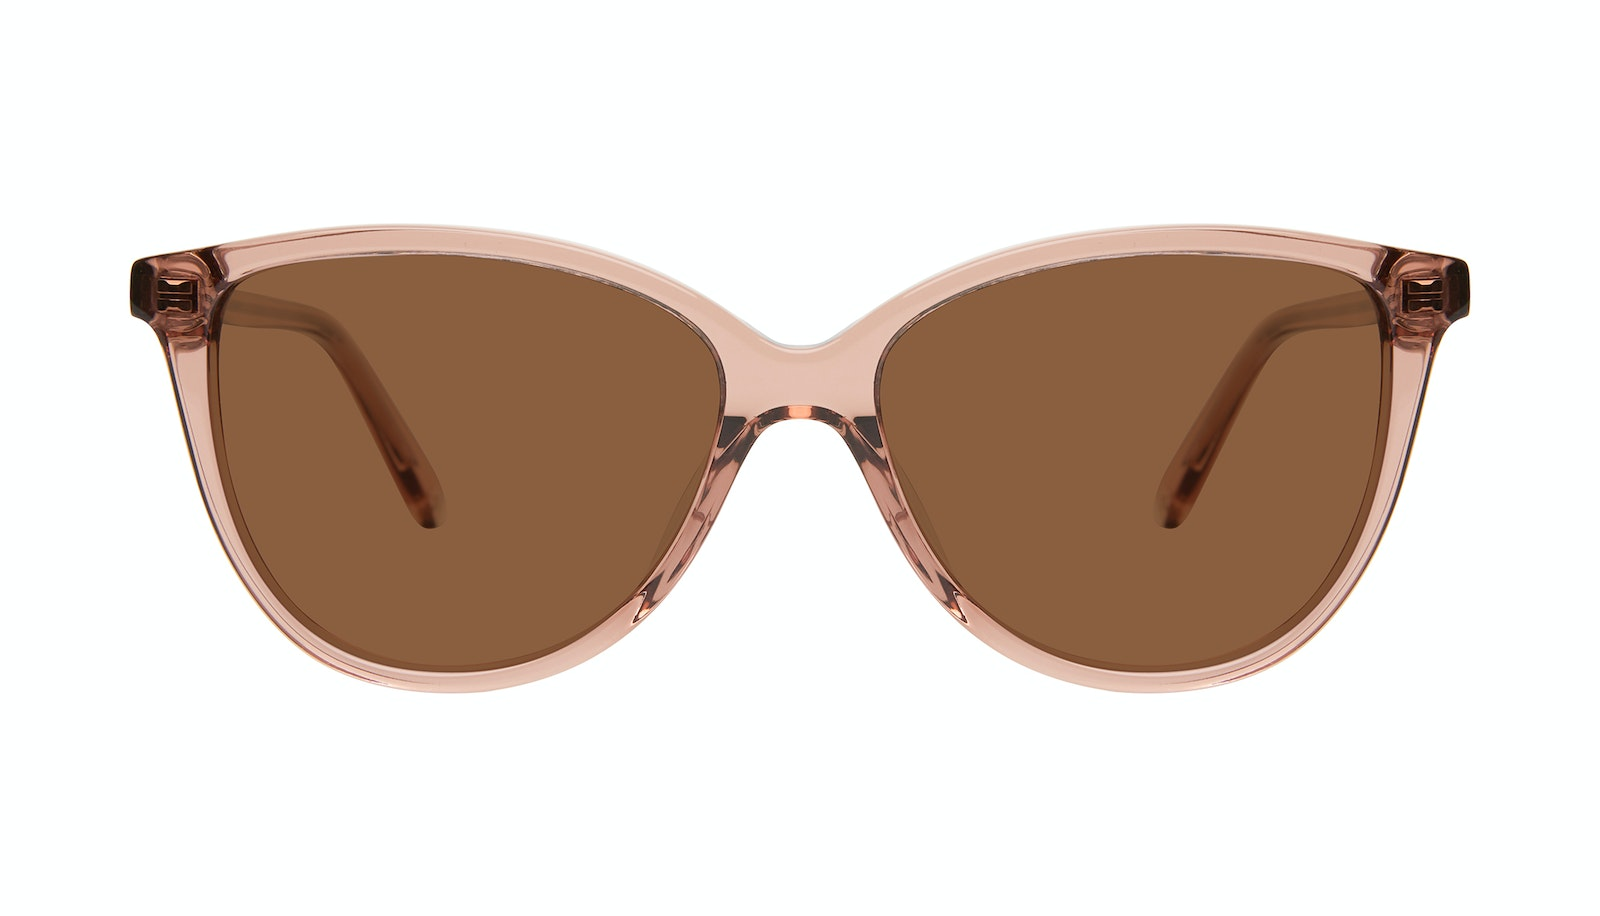 Affordable Fashion Glasses Cat Eye Sunglasses Women Tailor Rose